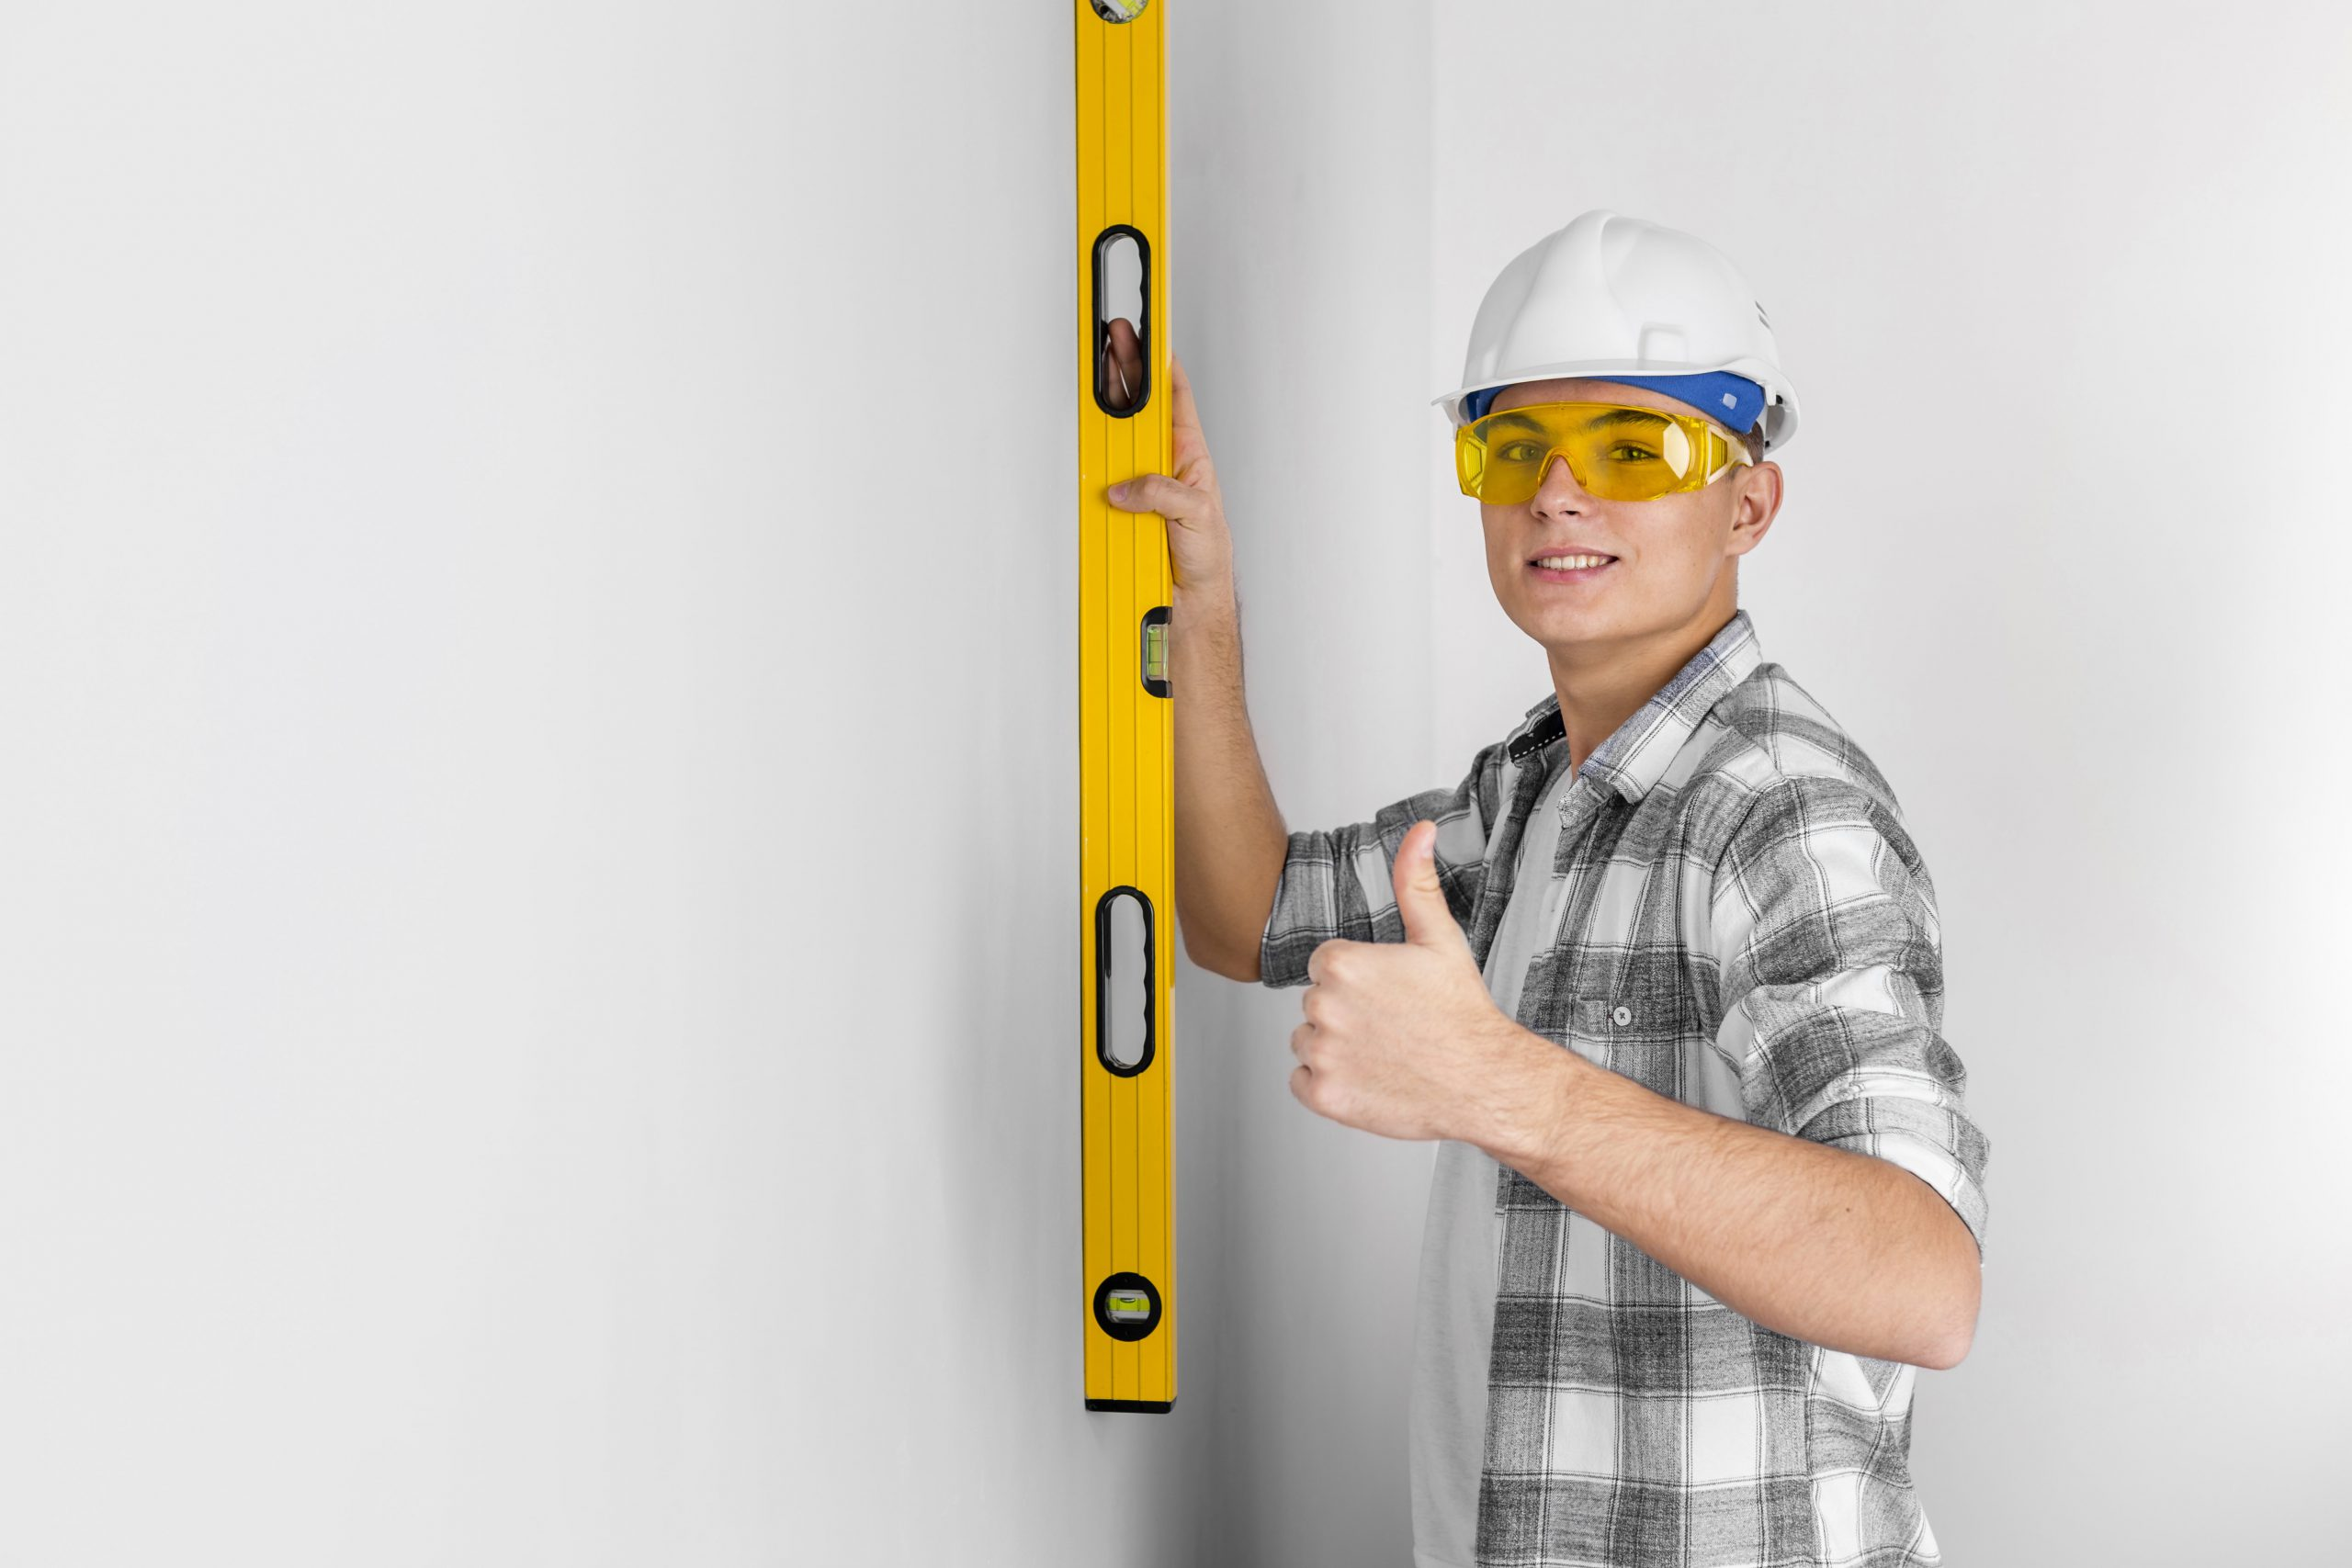 https://fbrconstruction.com/wp-content/uploads/2020/10/worker-with-spirit-level-wall-min-scaled.jpg